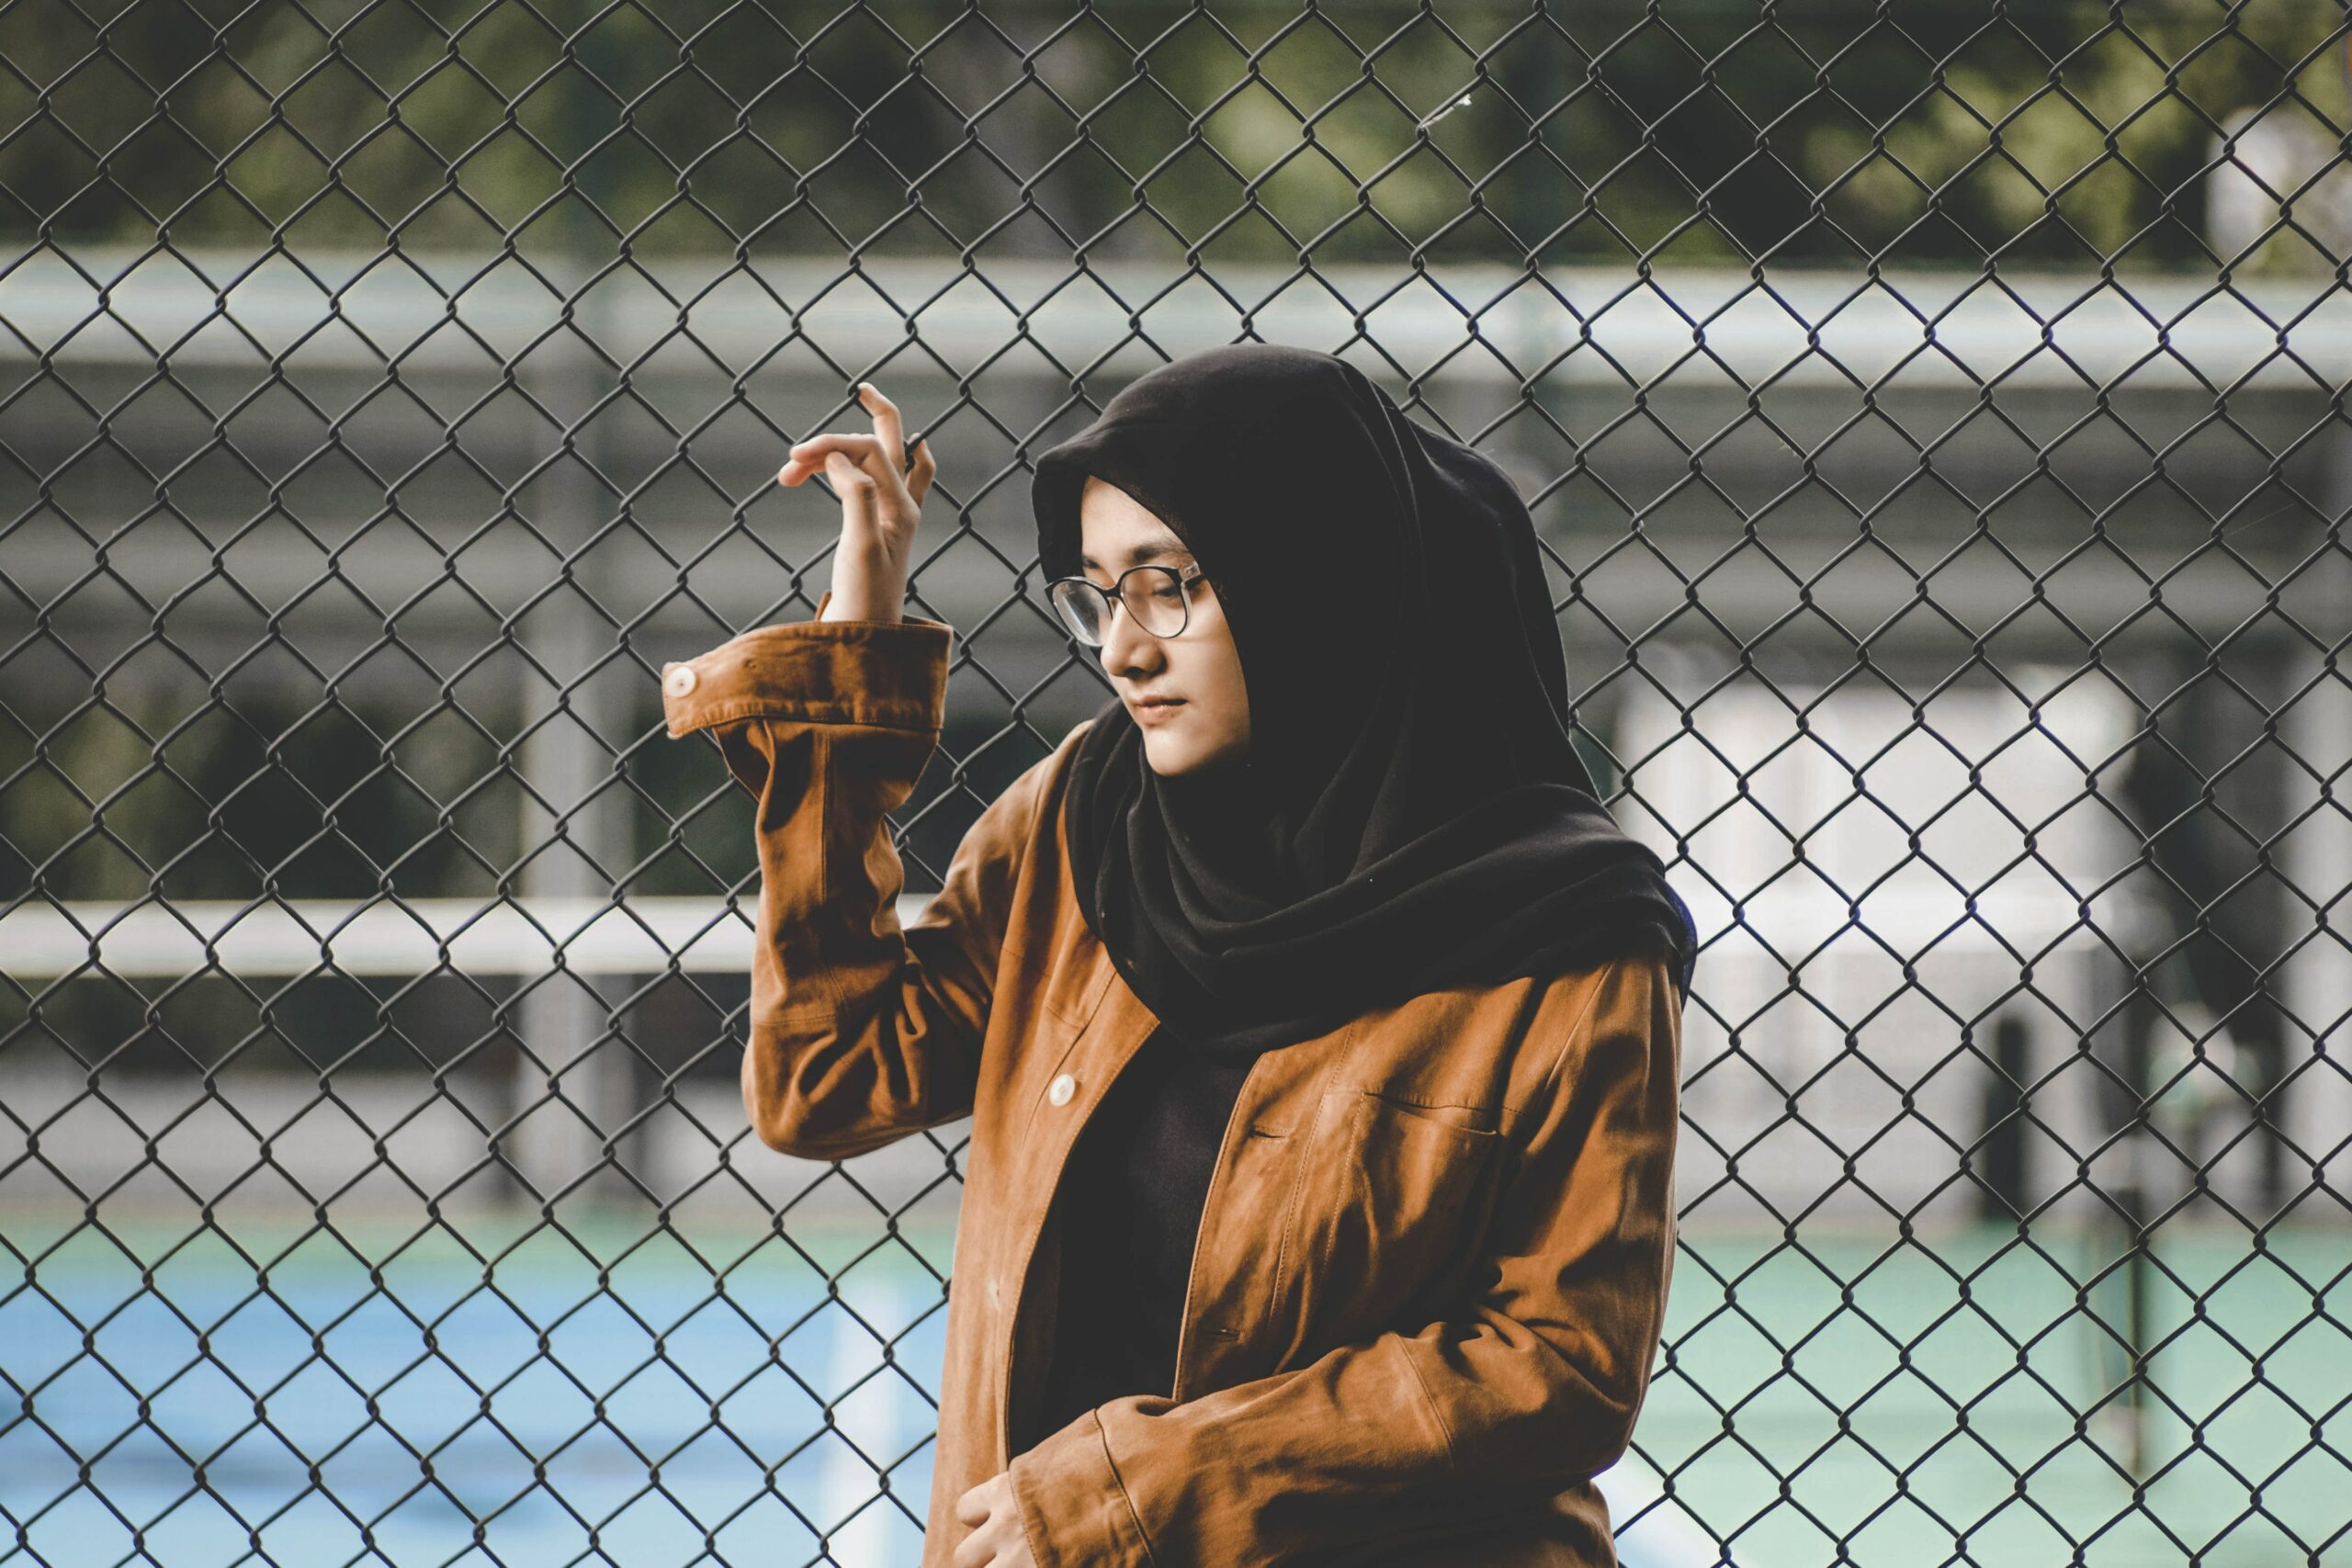 Researching British Muslims: Let's do it well or not at all